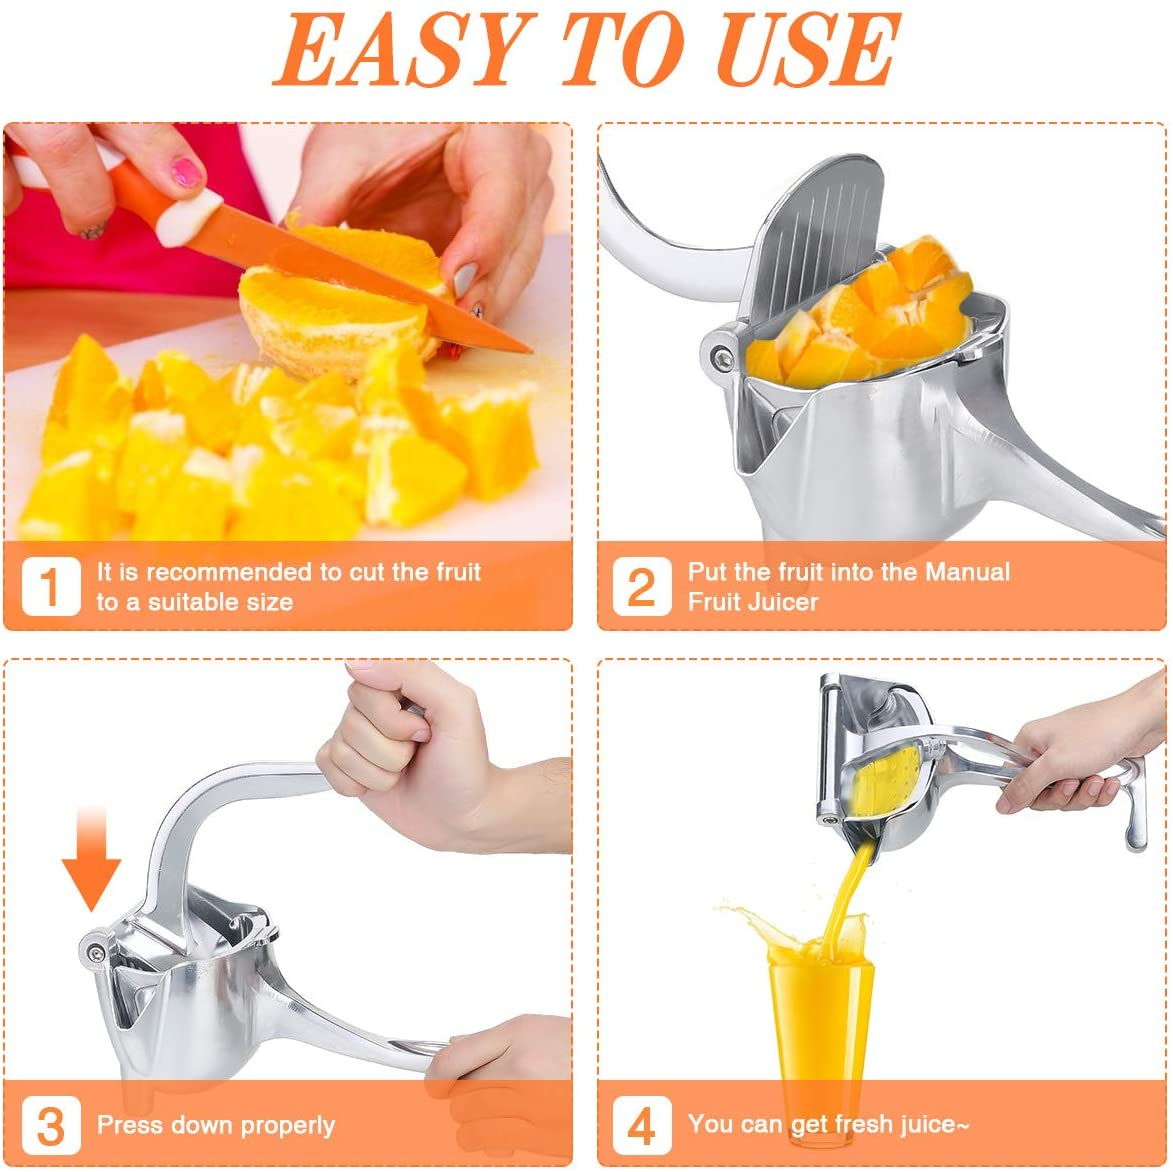 Stainless Steel Fruit Squeezer